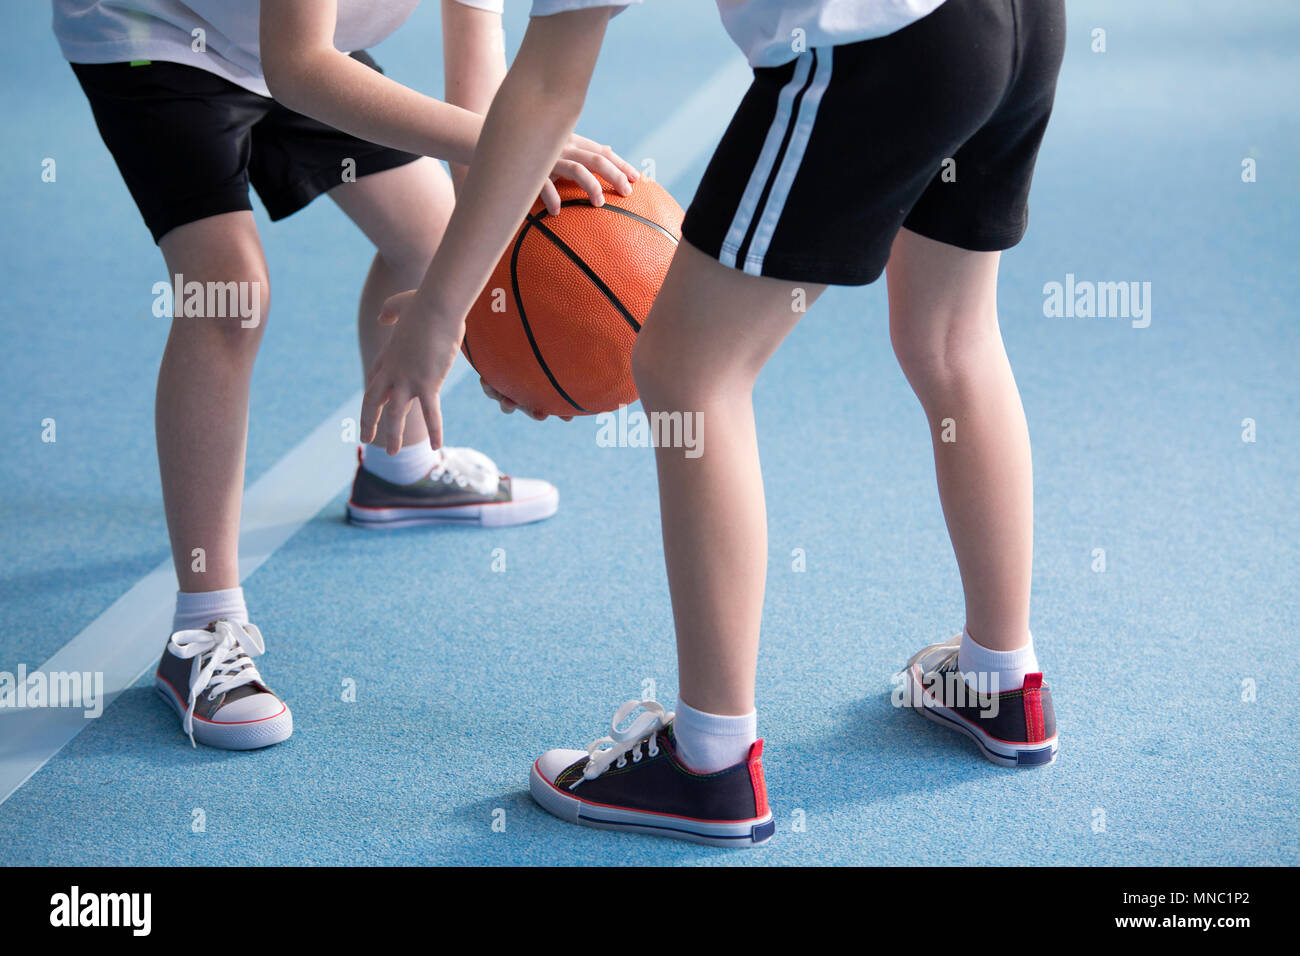 Close-up on young children wearing school sportswear learning to dribble a basketball during physical education classes in gym with blue floor Stock Photo